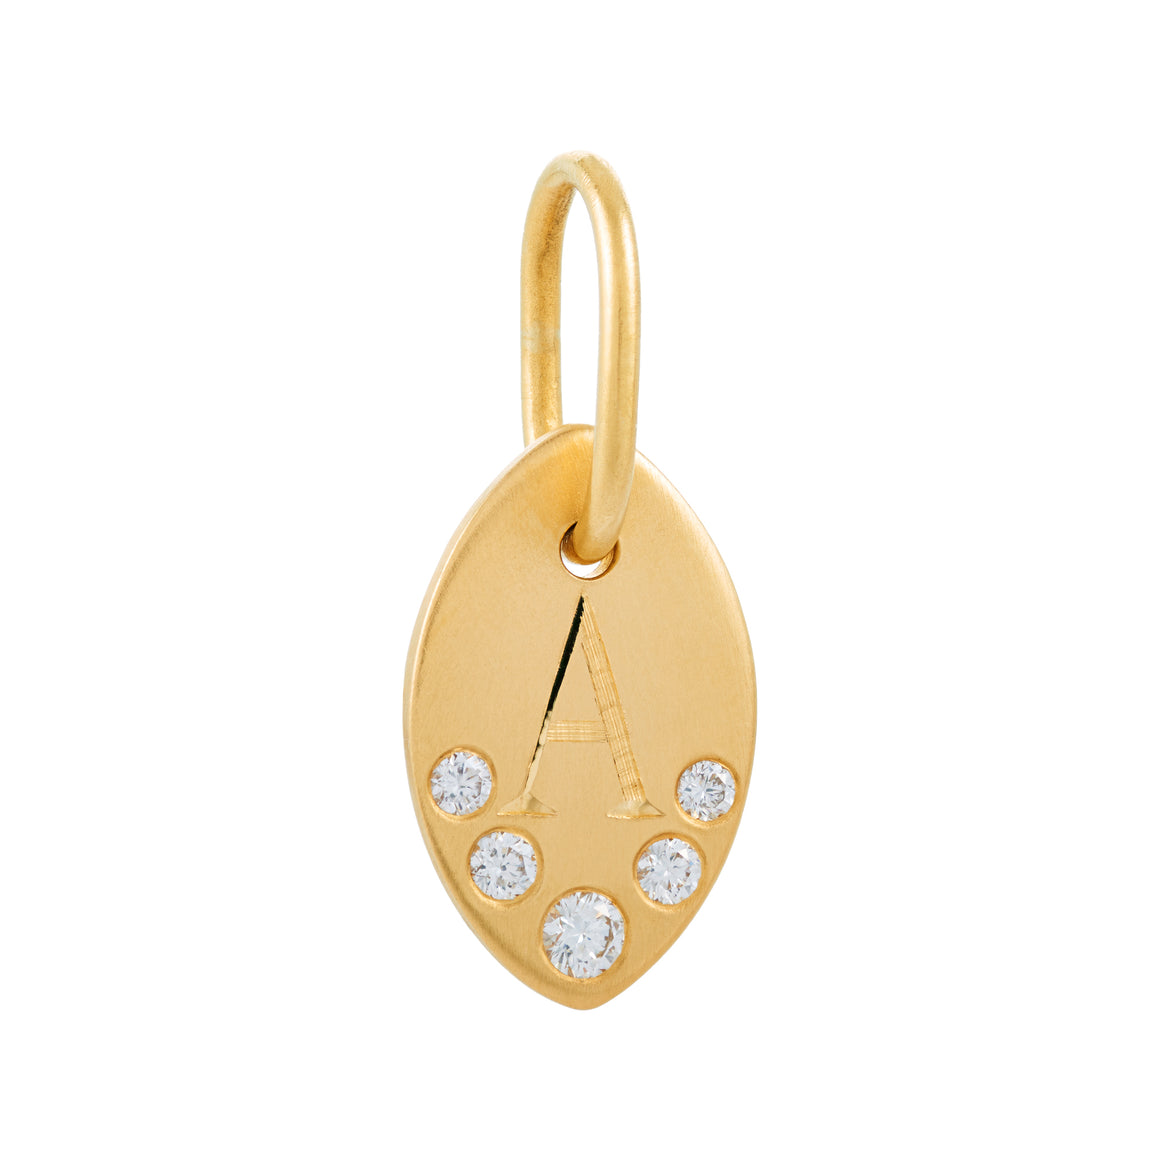 LOTUS LEAF GOLD CHARM